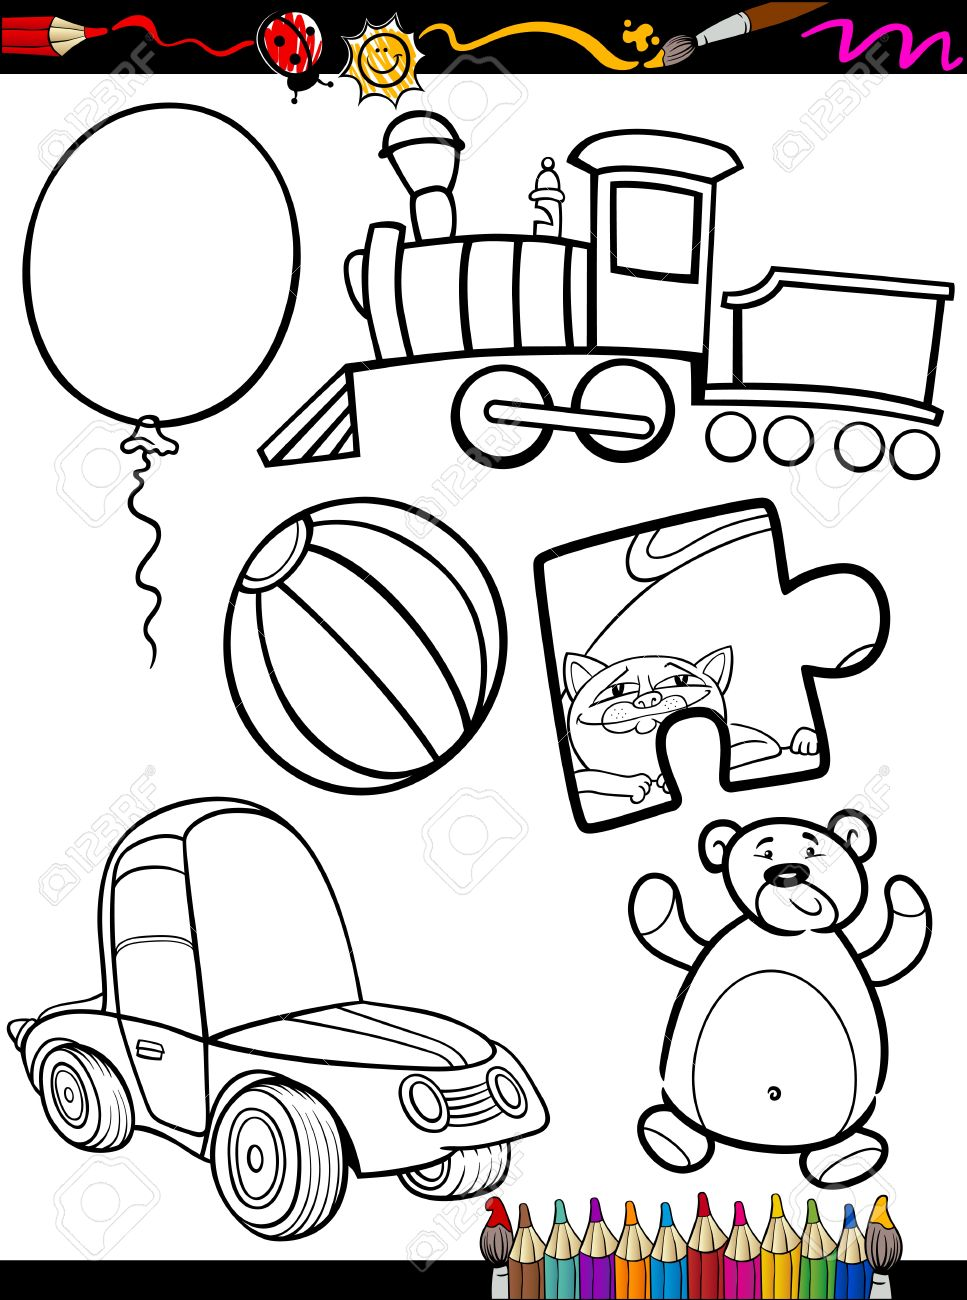 Coloring Book Or Page Cartoon Illustration Of Black And White Toys Objects Set For Children Education